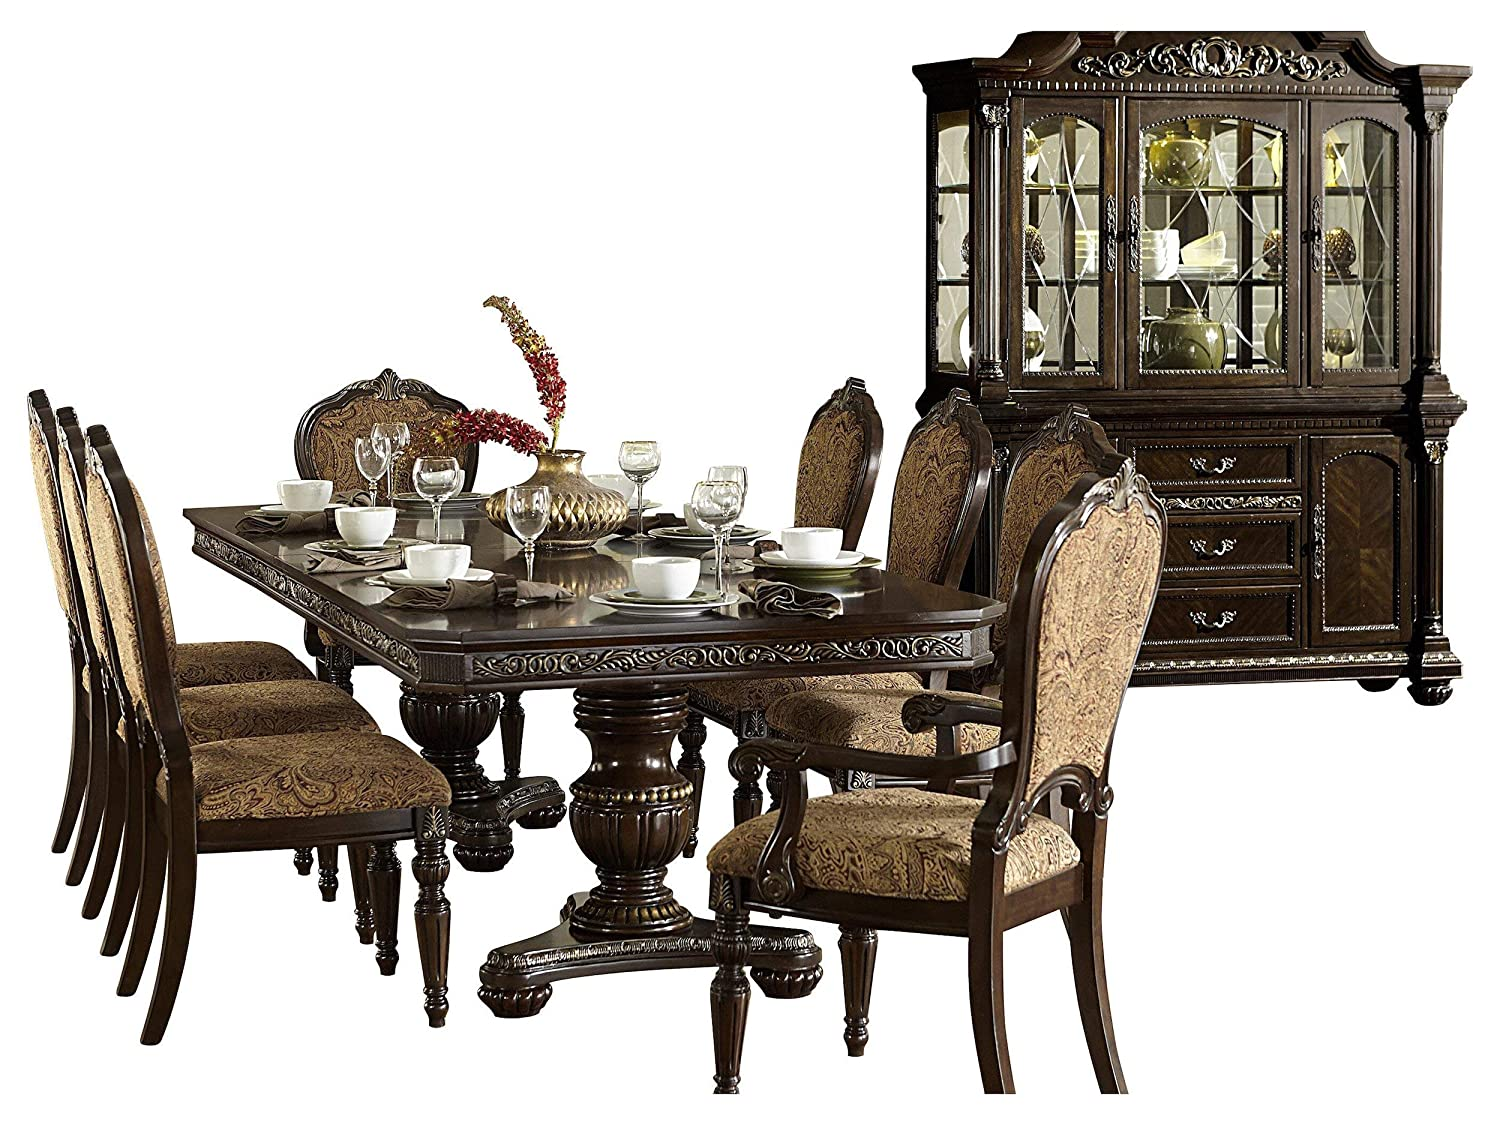 Ragosta European 10PC Dining Set Double Pedestal Table, 2 Arm, 6 Side Chair, Buffet & Hutch in Warm Cherry